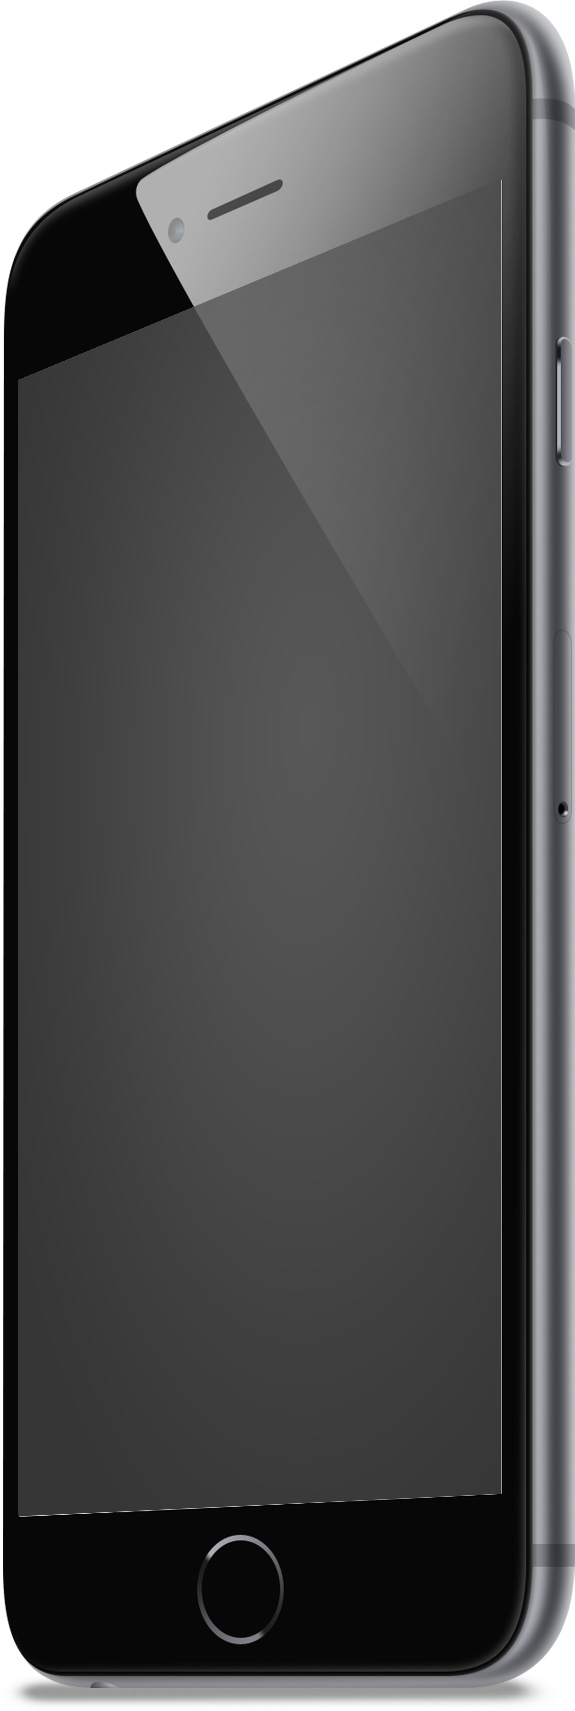 IPhone6 Grey Right Mockup